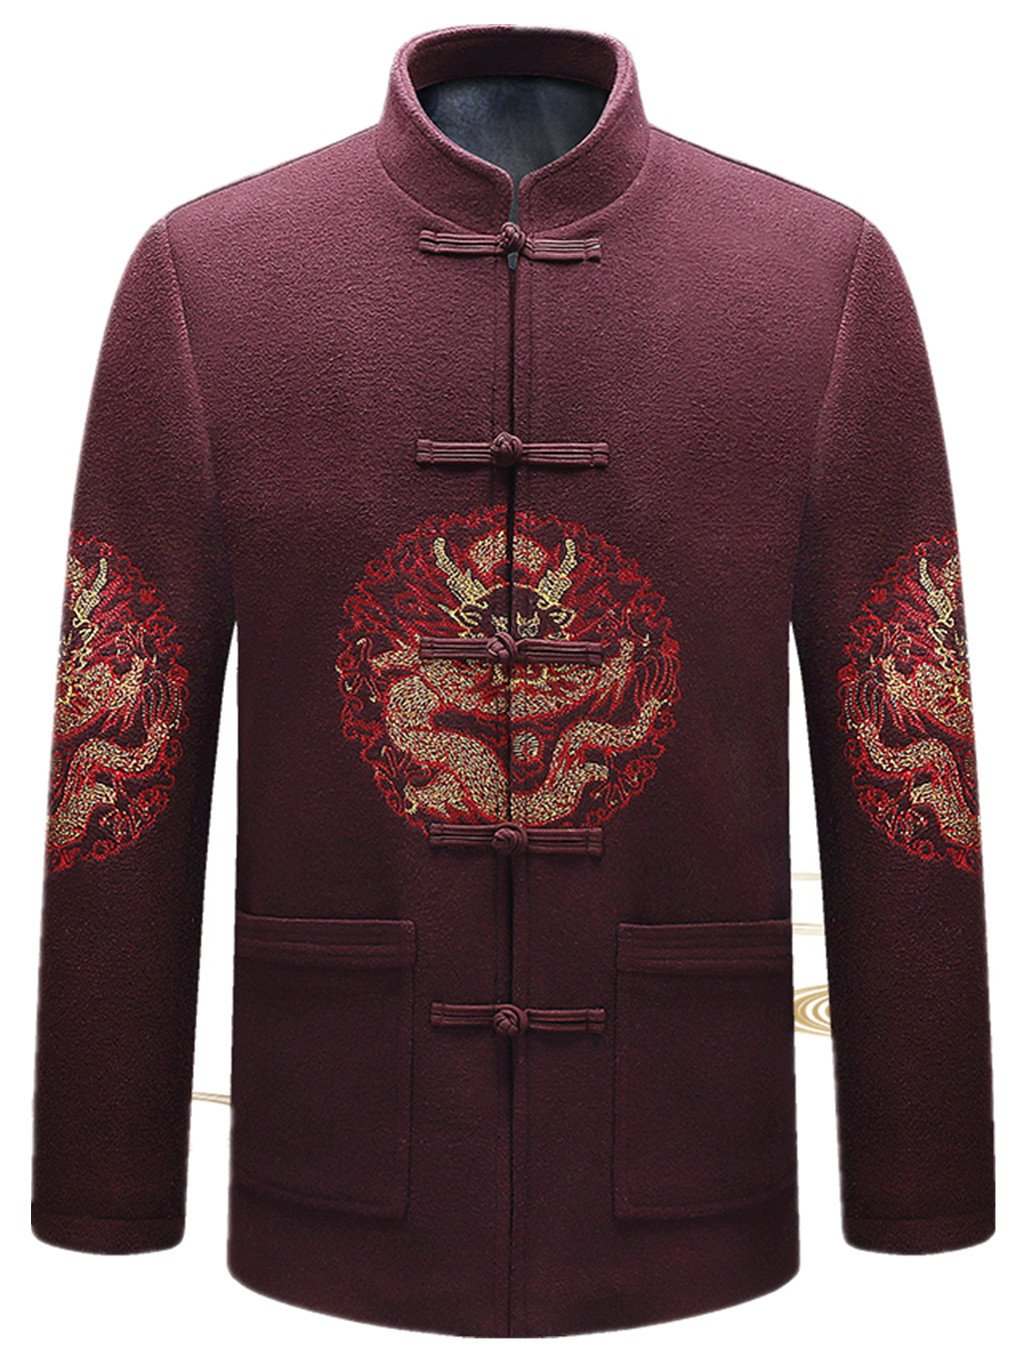 High-end Jacquard Weave Tang Suit Retro Jackets Mens Jackets Mens Coats Business Jackets